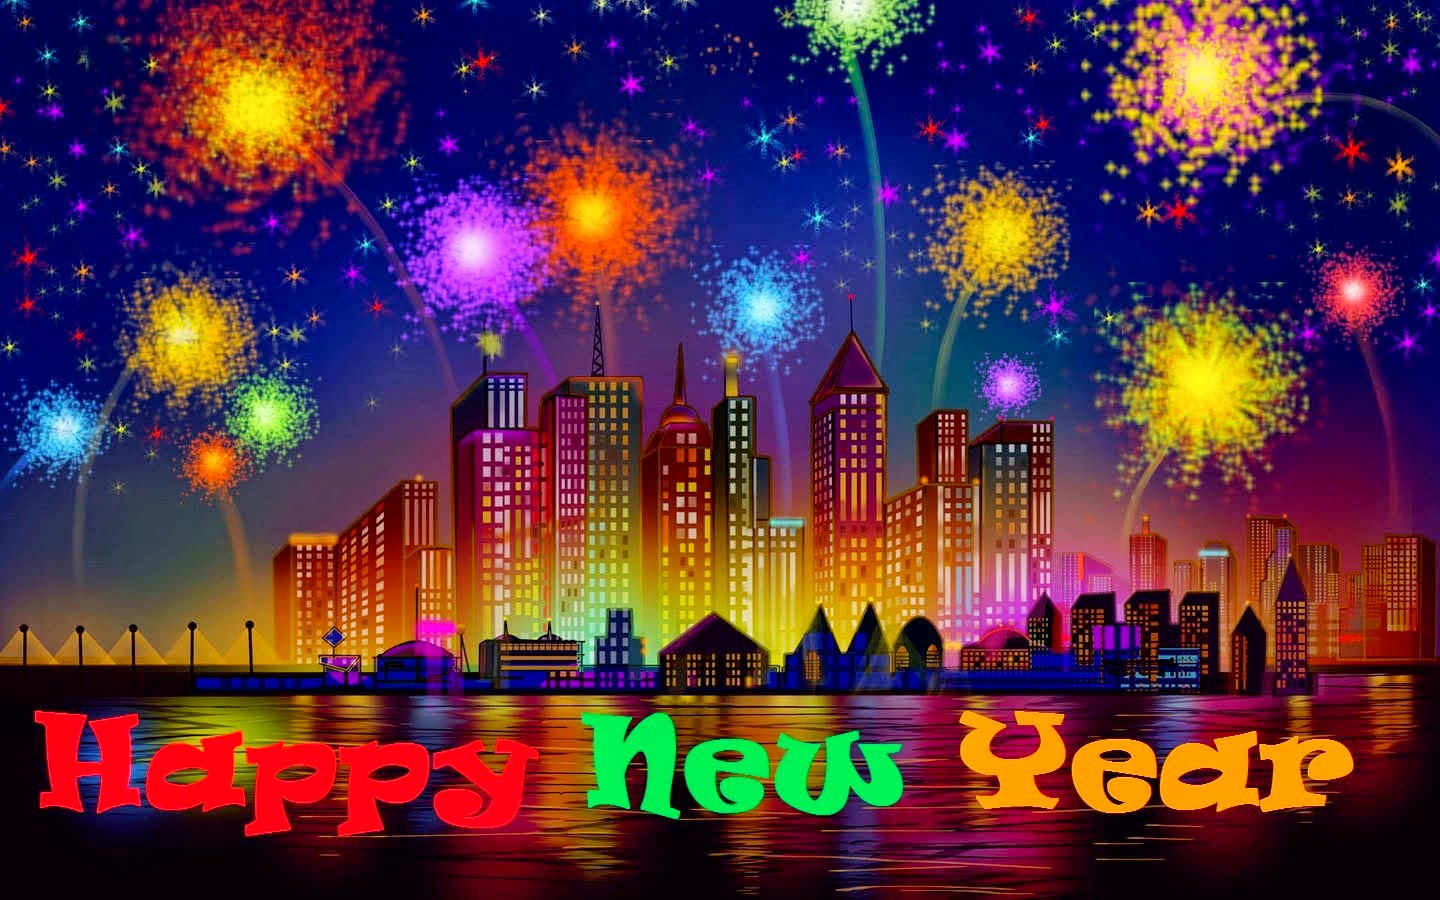 Happy New Year 2019 Wishes in Hindi Wallpaper